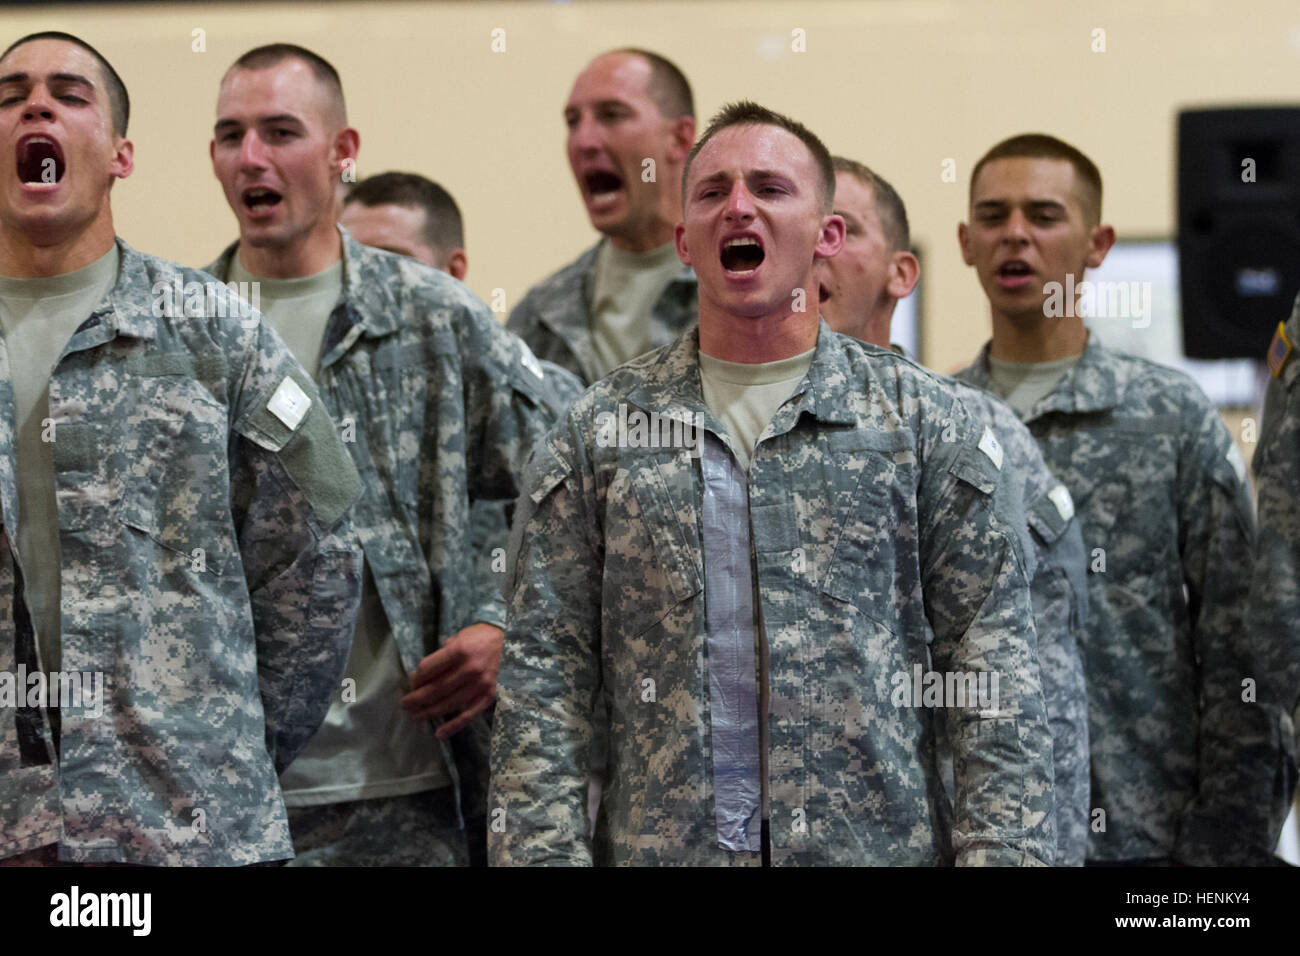 Spc Joshua Hawn Of The 78th Training Division And Other Competitors Shouting A Strong HOOHA